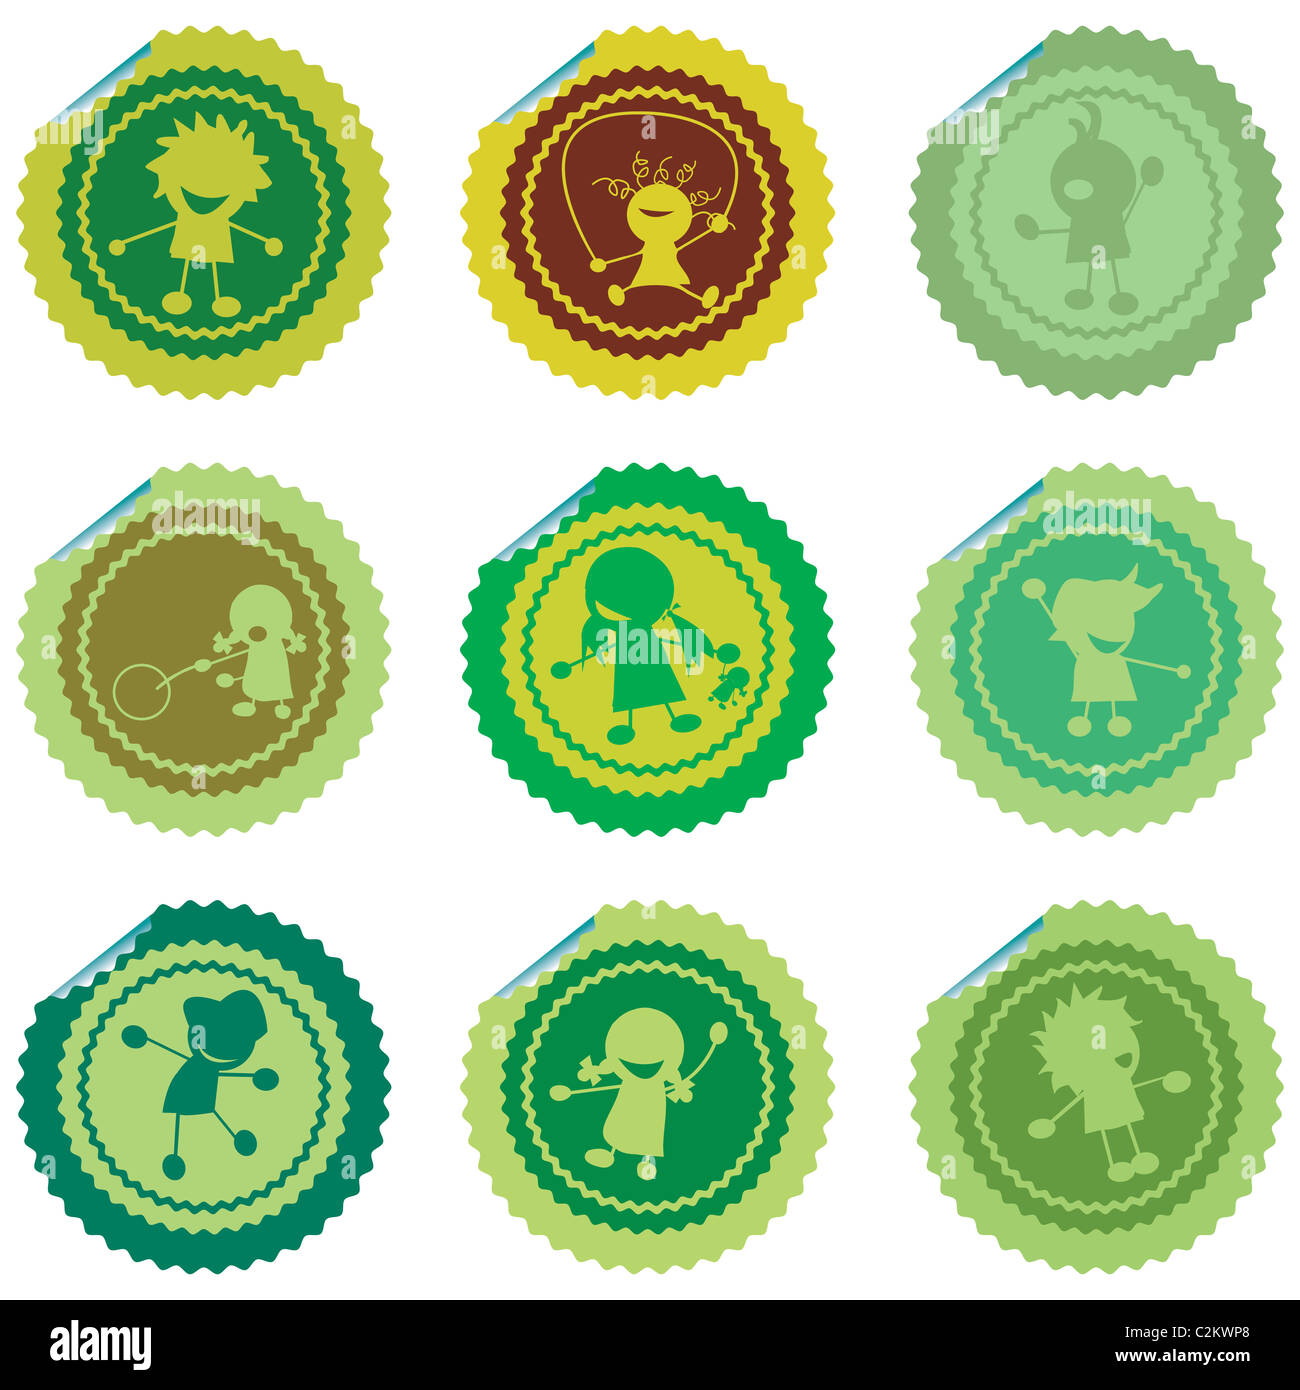 stylized children stickers - Stock Image